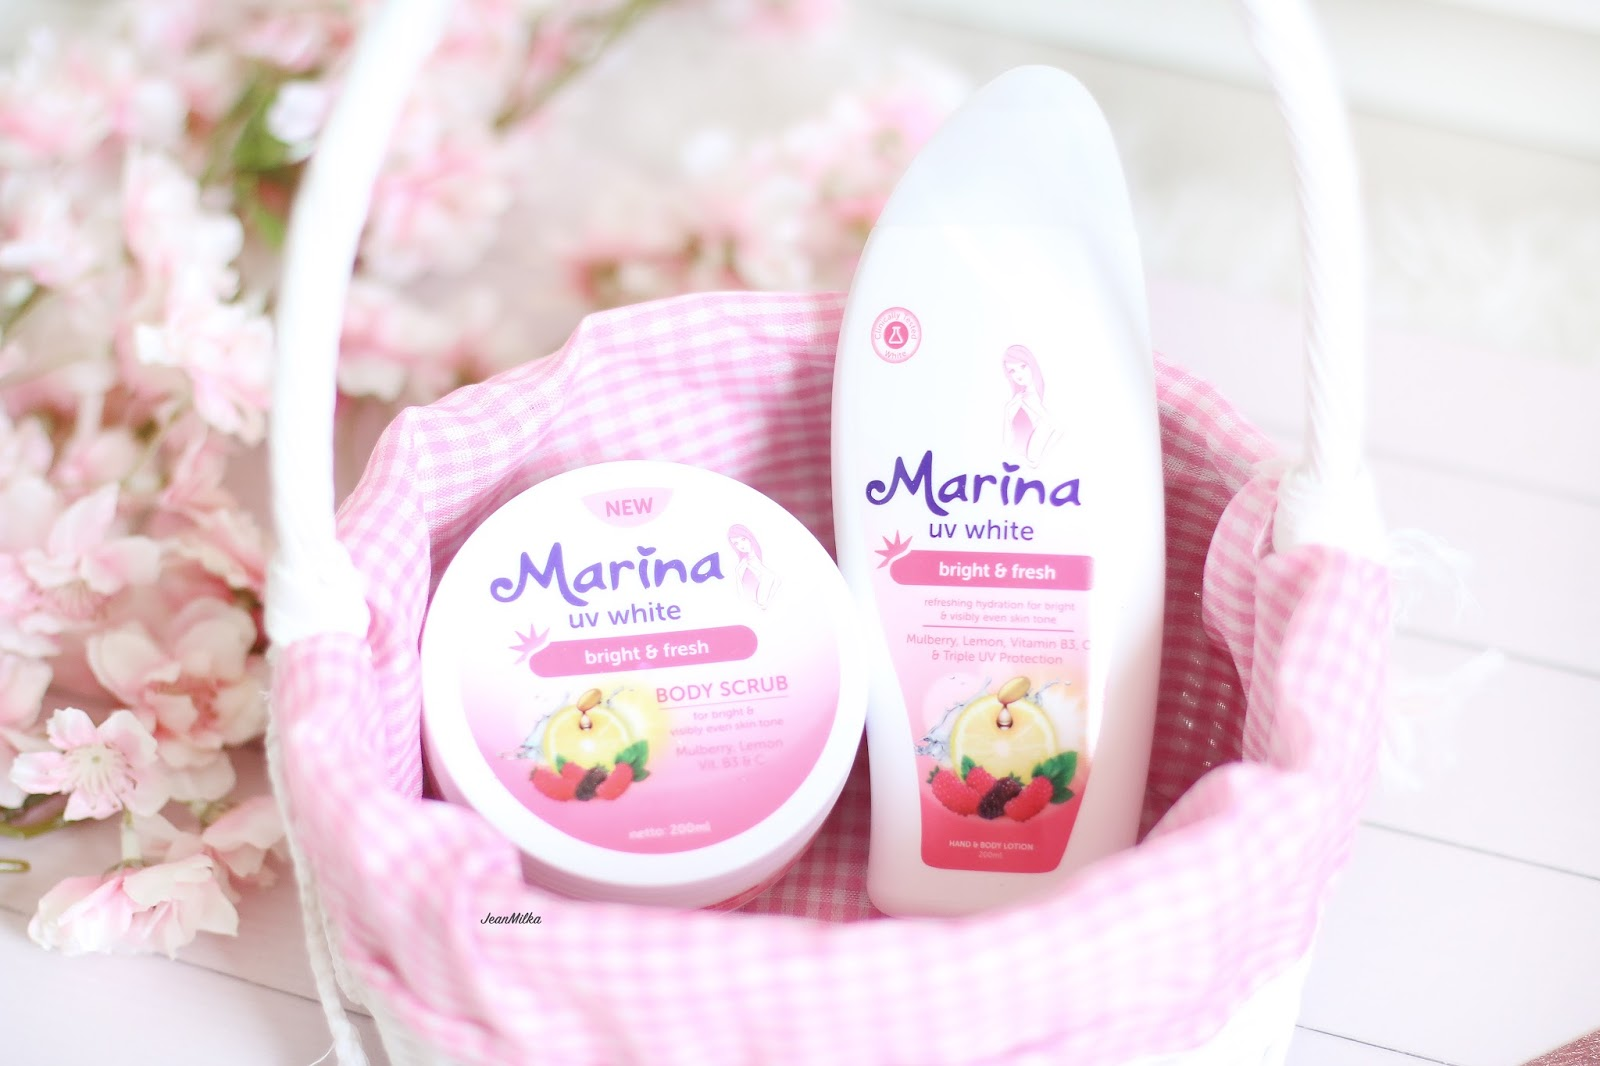 marina, marina body scrub, marina body lotion, review, product review, marina lotion, marina scrub, kulit mulus cerah, body care